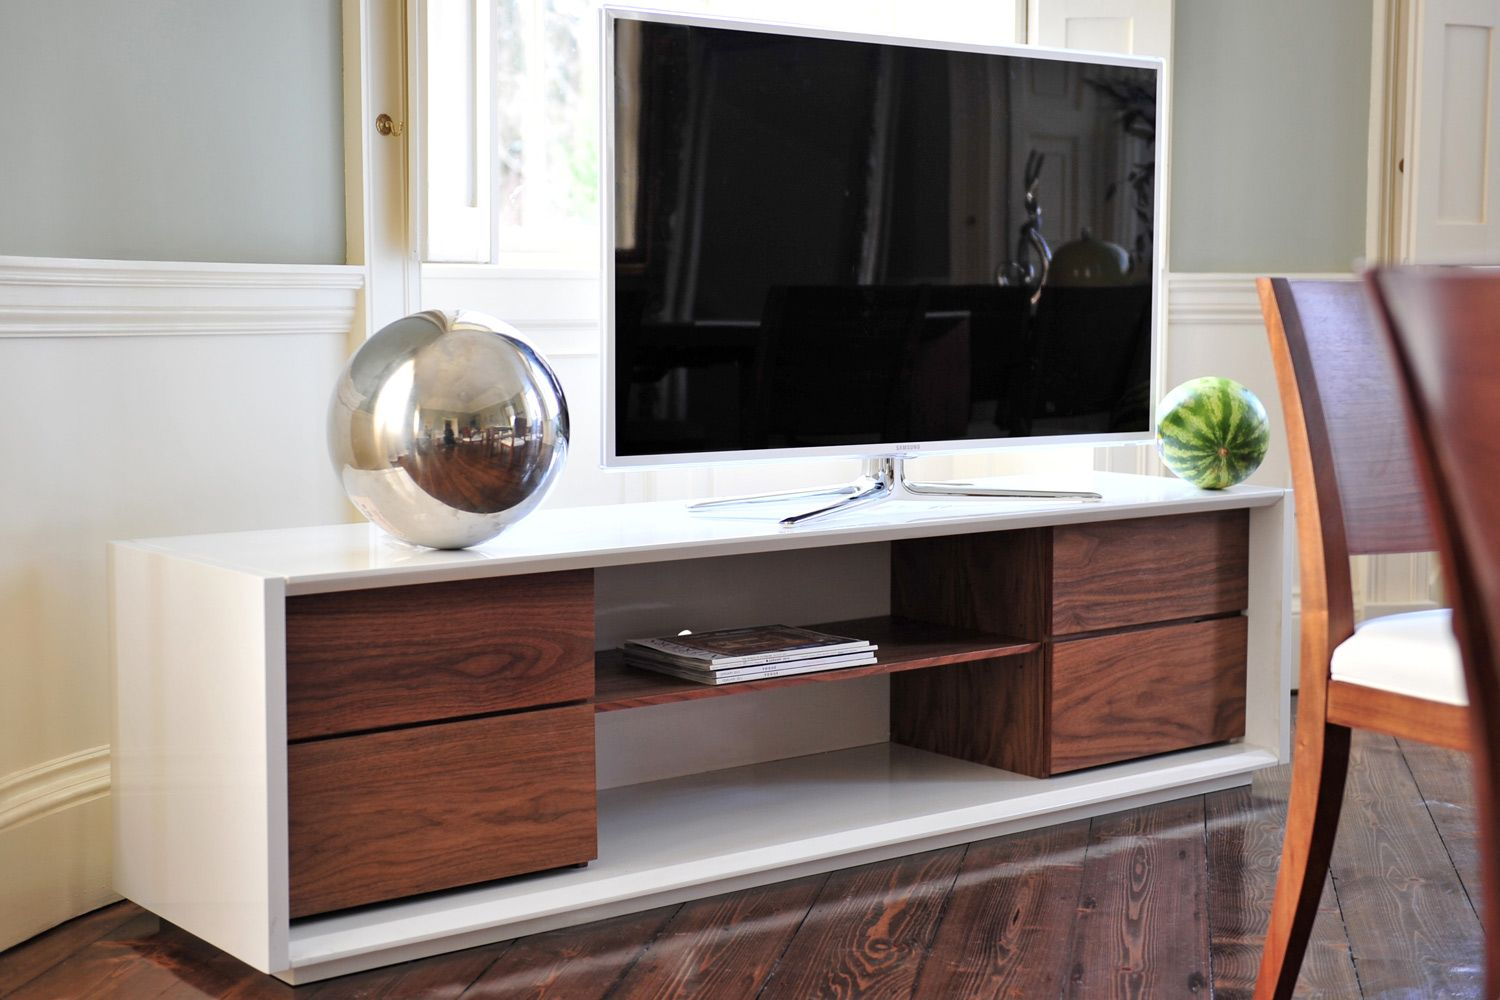 Apollo tv stand from harvey norman ireland for my home - Harvey norman ireland ...